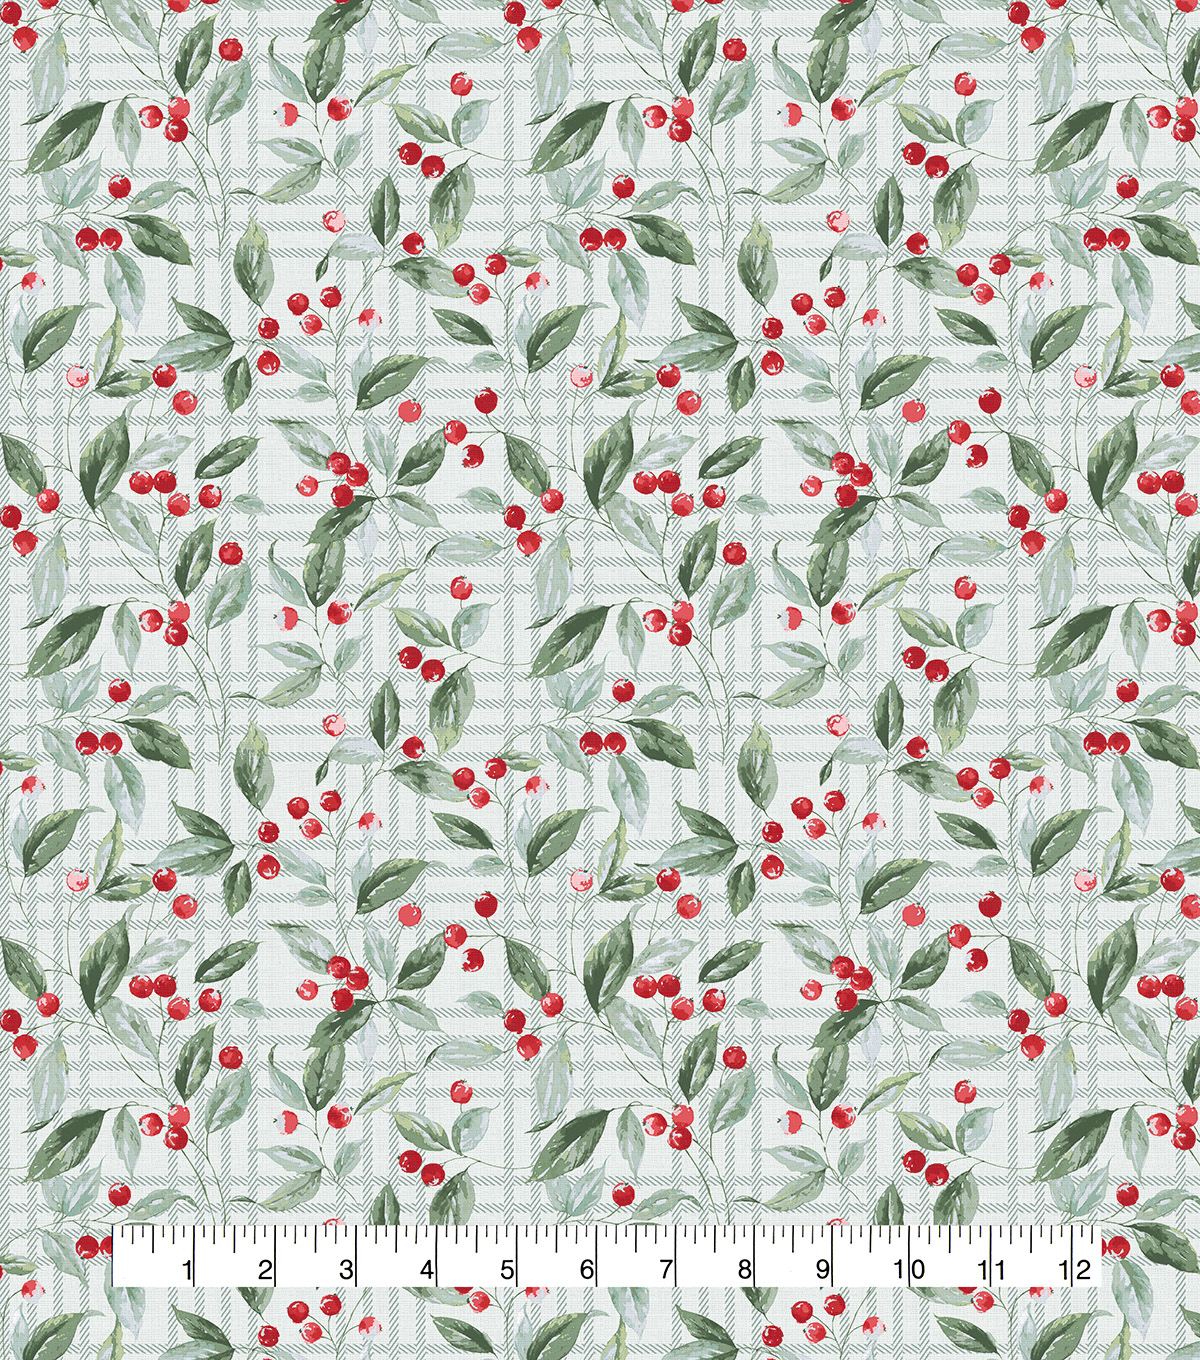 Christmas Cotton Fabric-Plaid Berries & Leaves